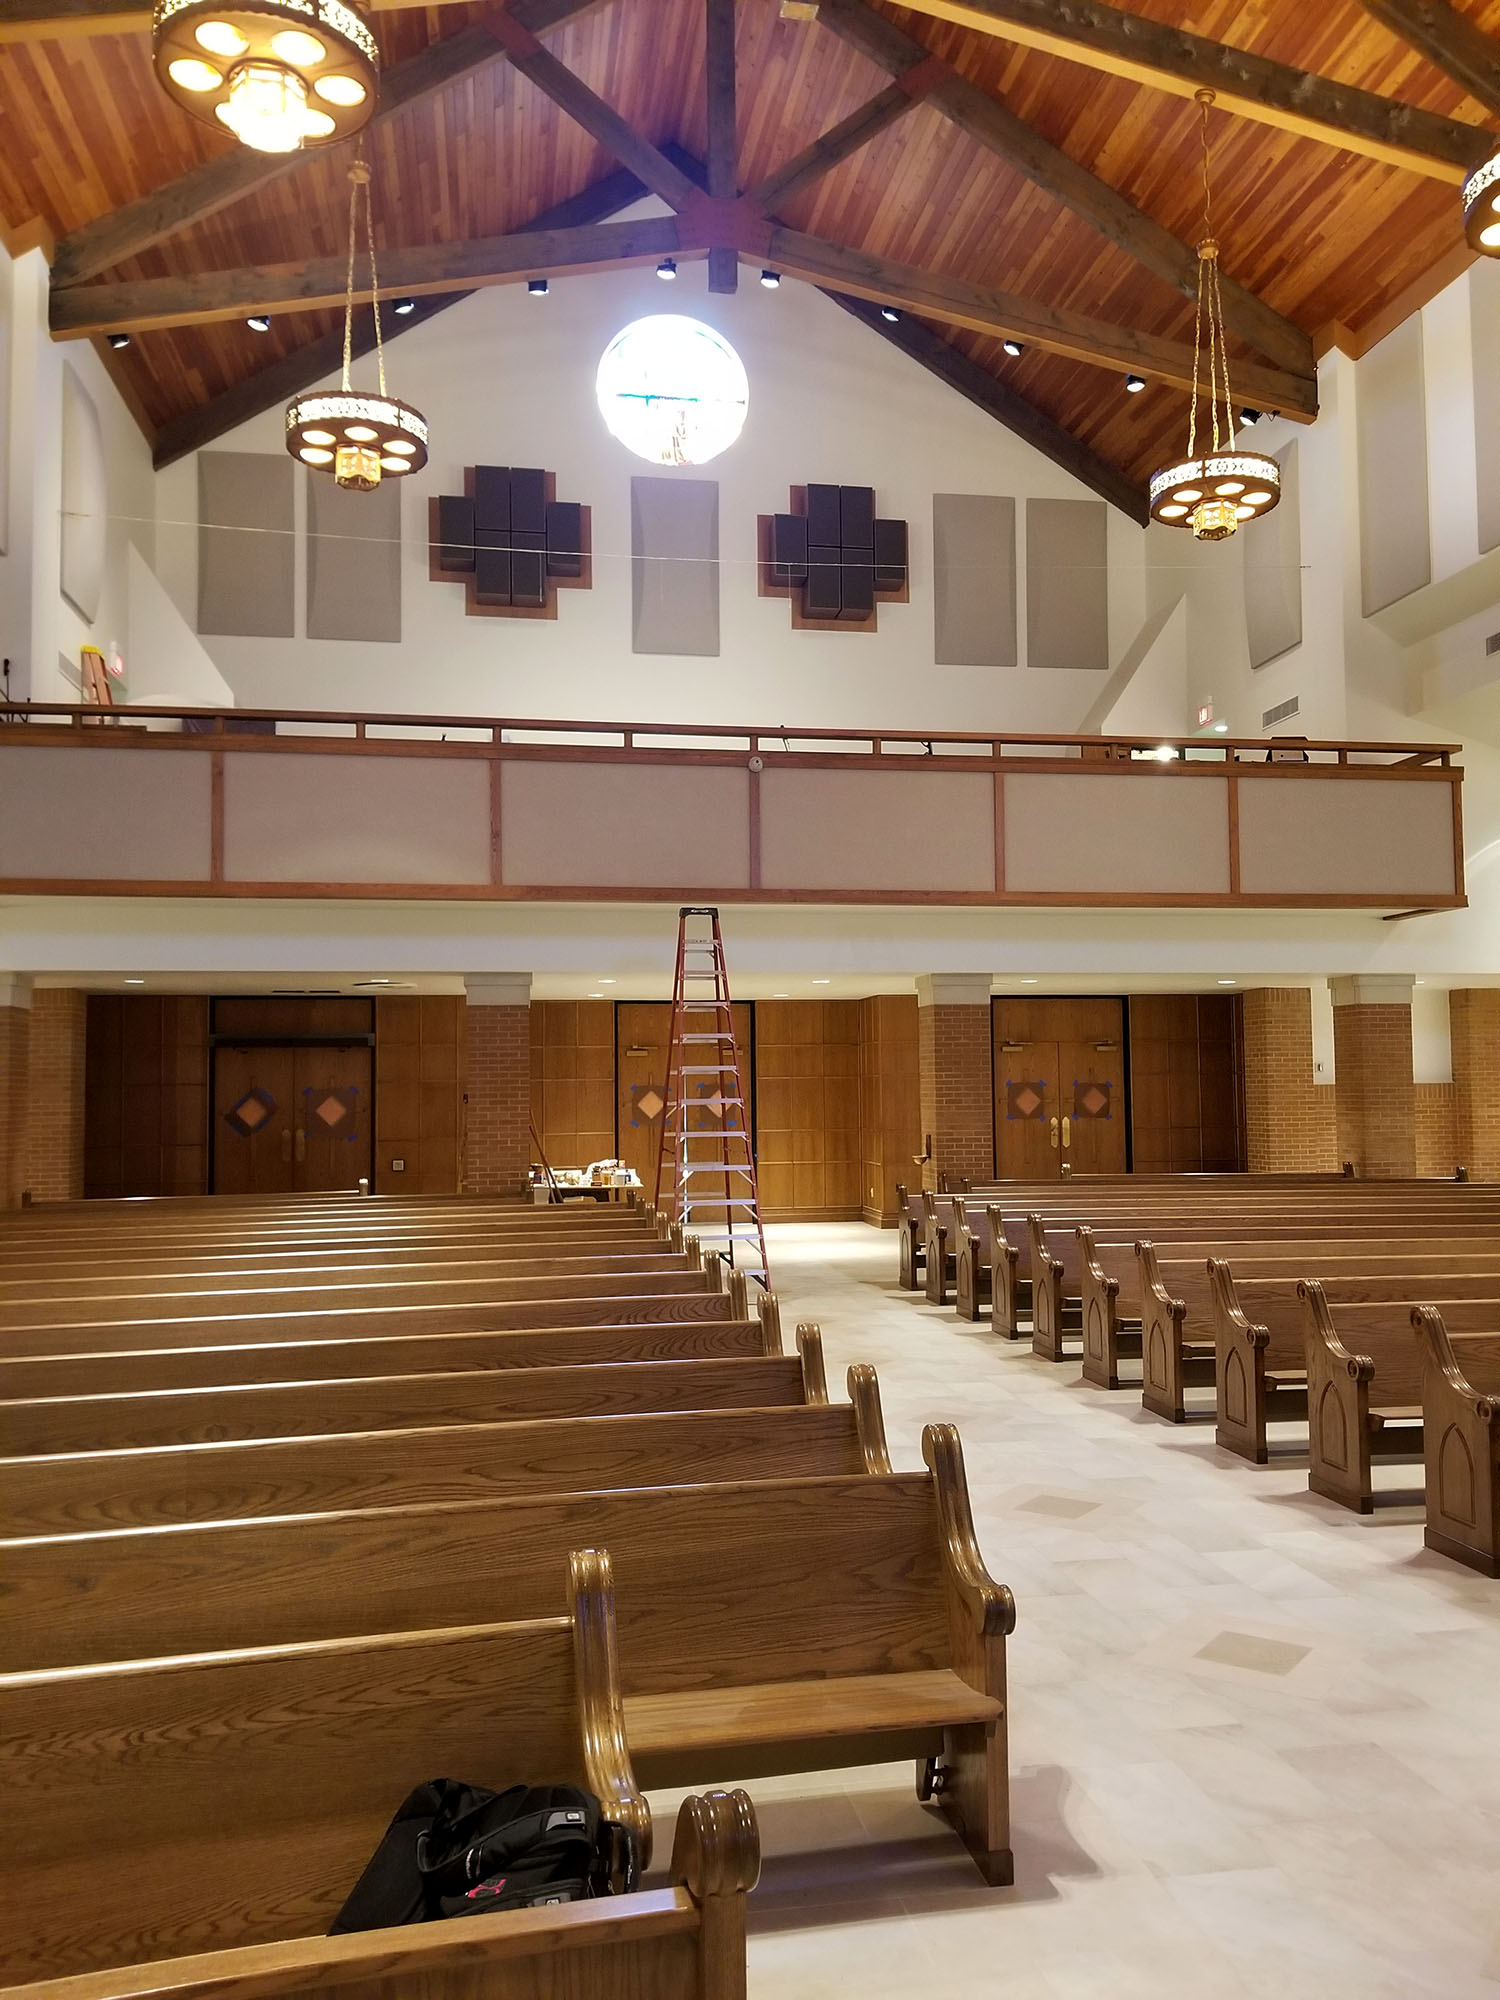 Saint Anthony Catholic Church Renovation Progress